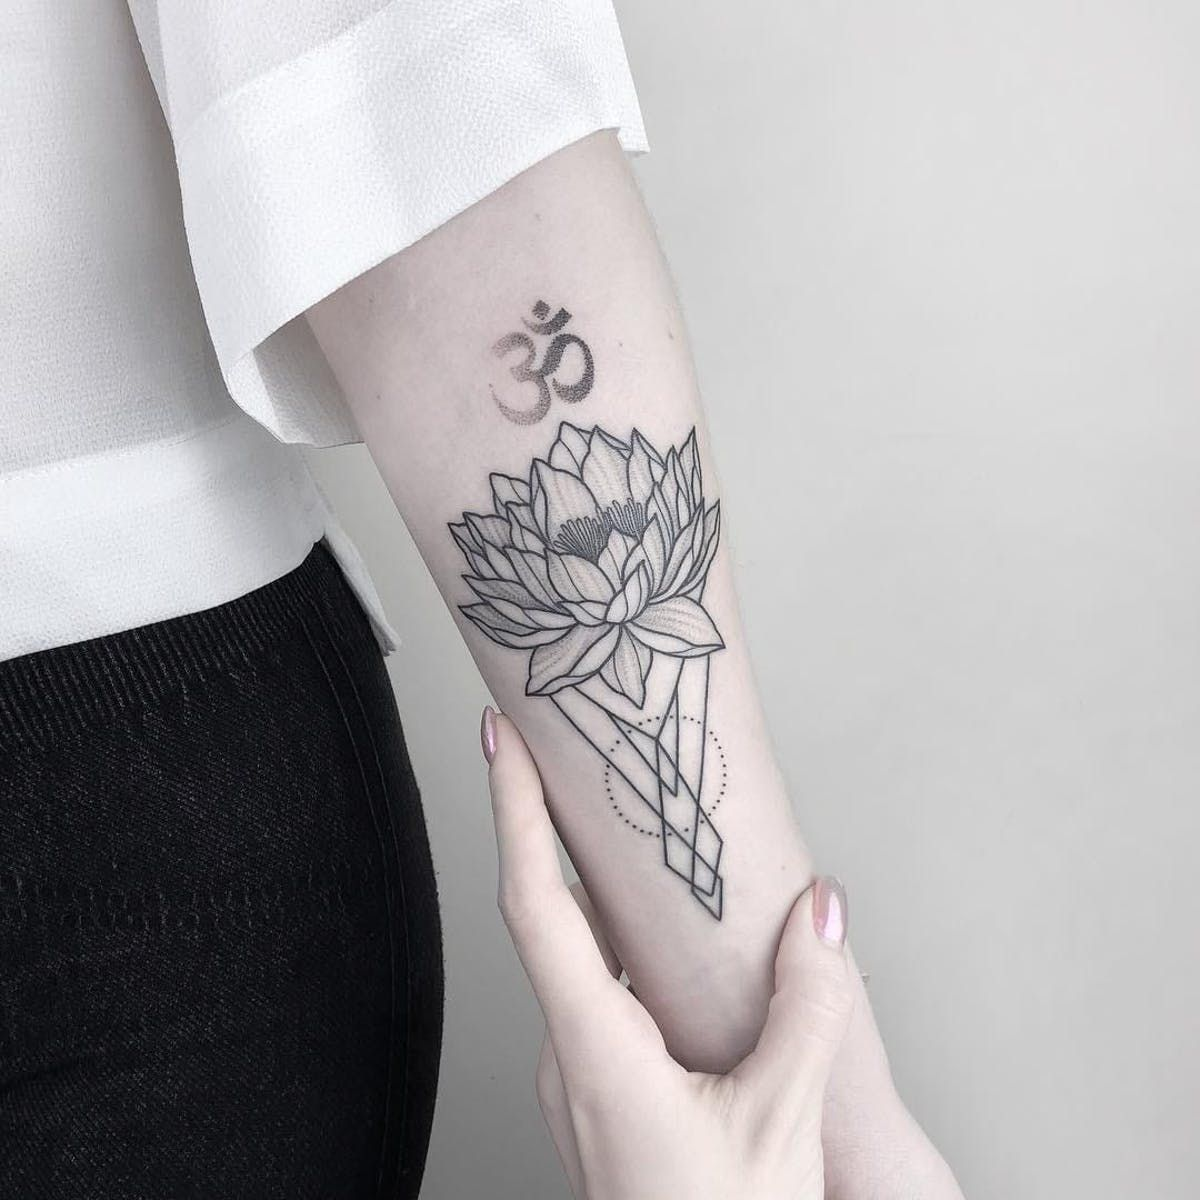 Lotus And Ohm Tattoo By Nastyafox Nastyafox Anastasiaslutskaya Fineline Linework Illustrative Minimal Abstract Sacredgeometry Lotus Flower Ohm Om S